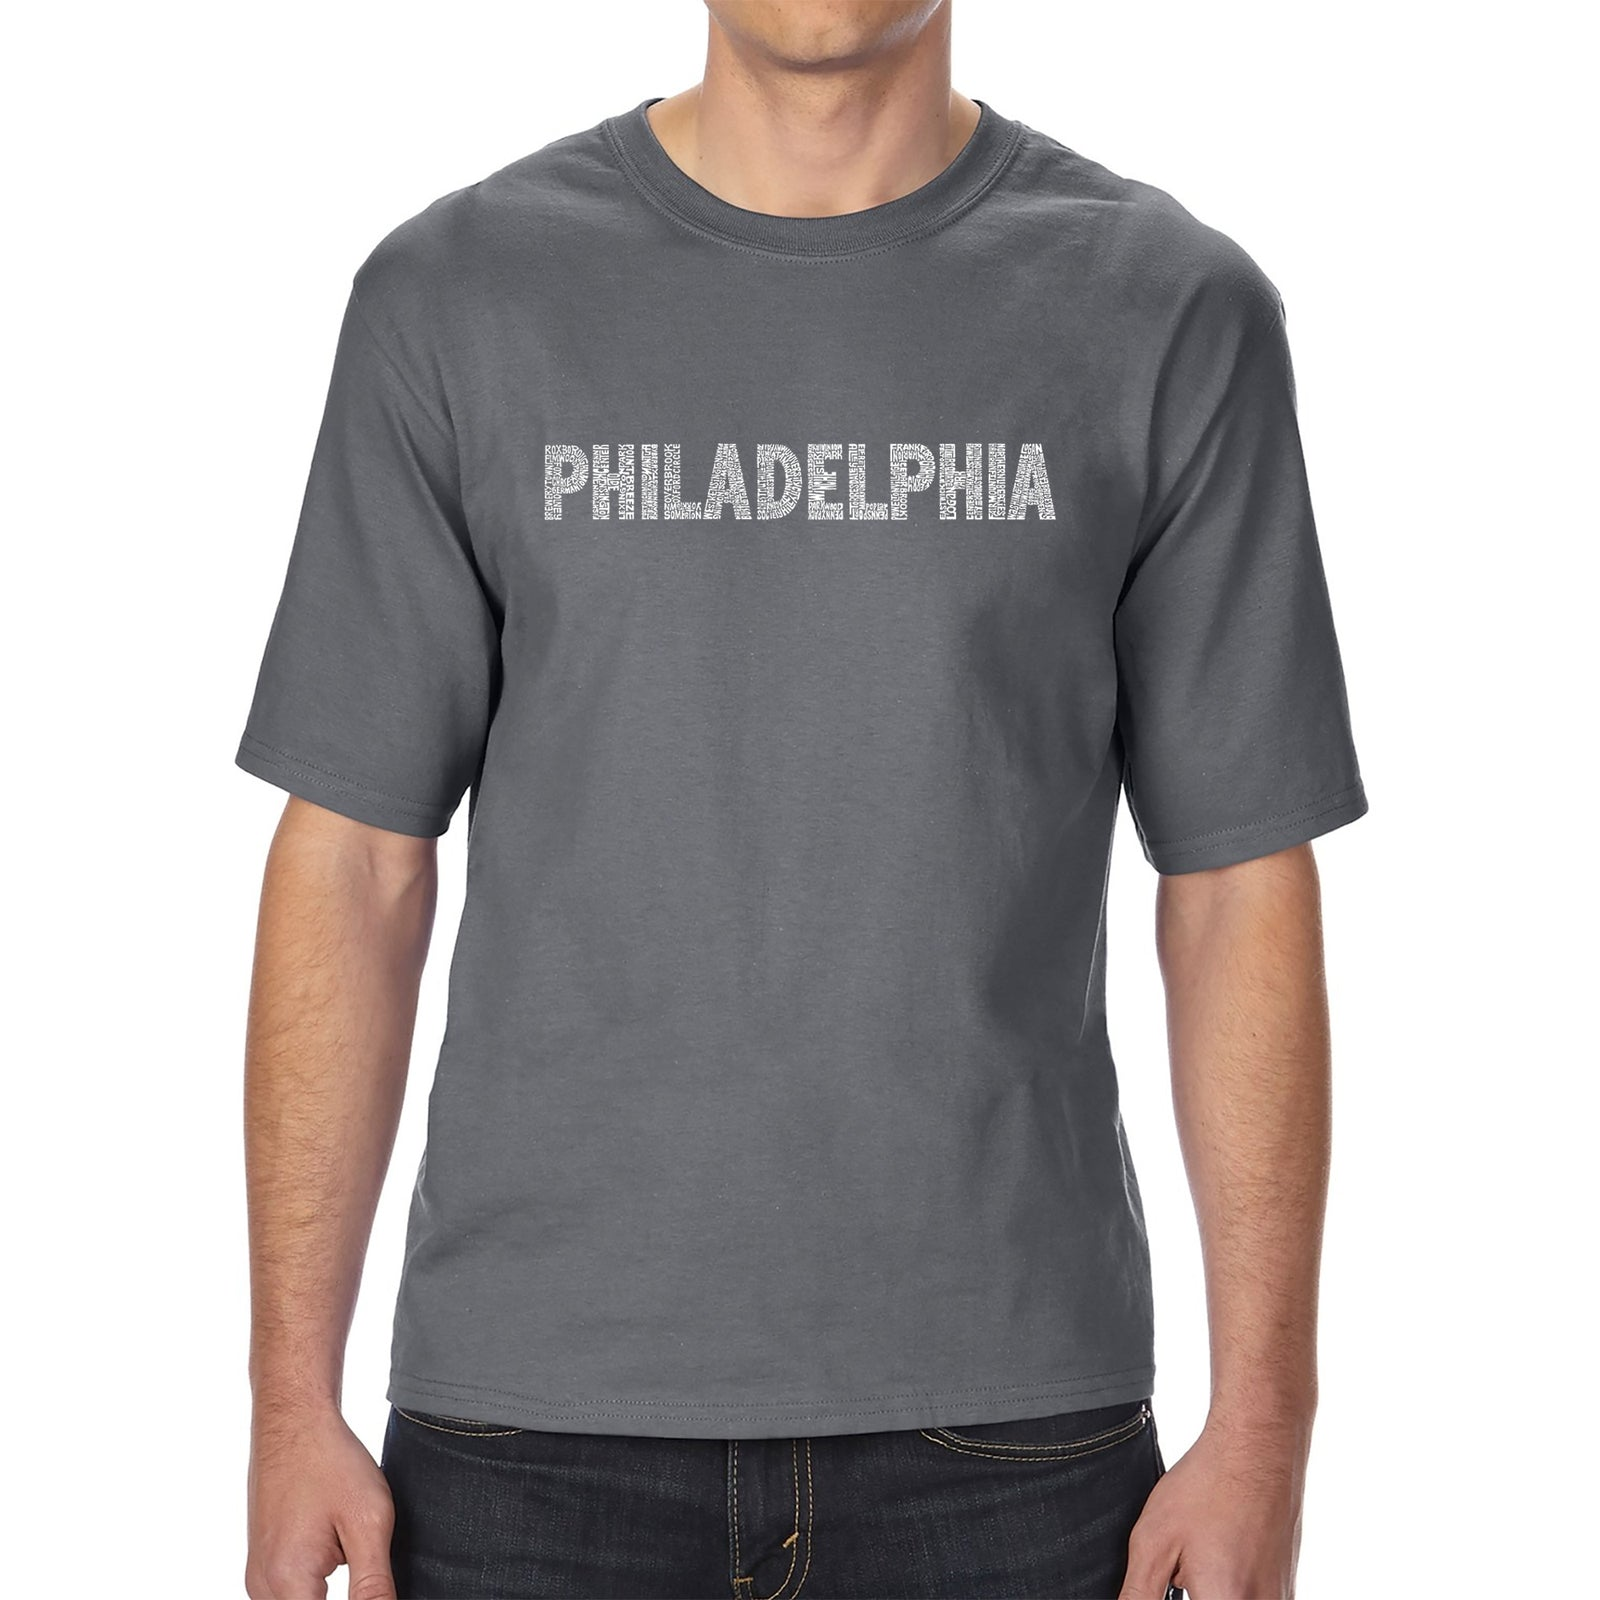 Men's Tall and Long Word Art T-shirt - PHILADELPHIA NEIGHBORHOODS